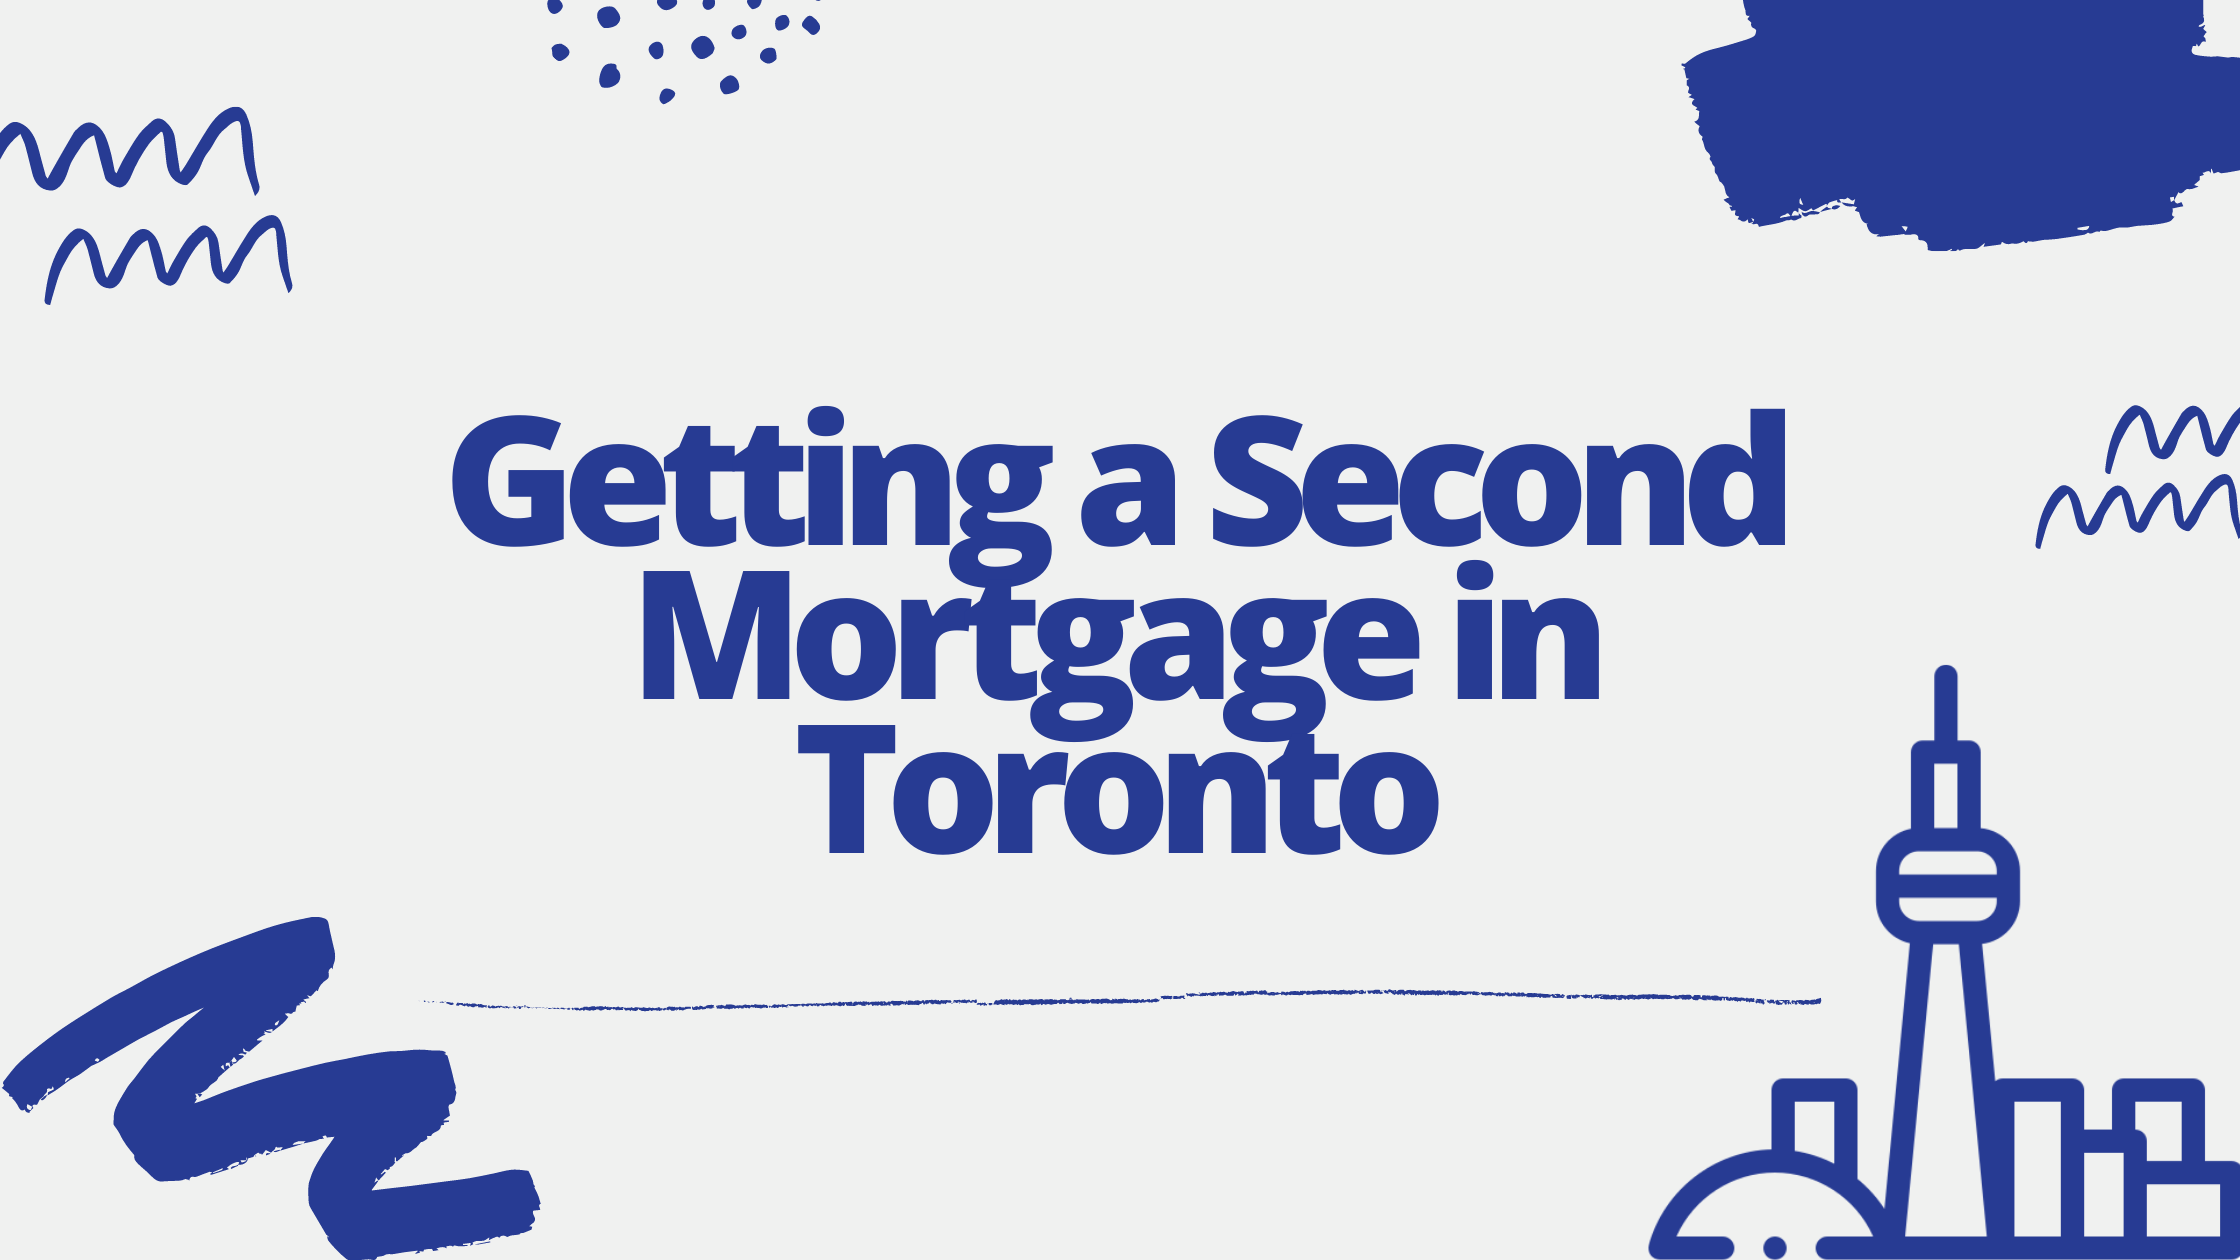 getting a second mortgage in toronto blog banner